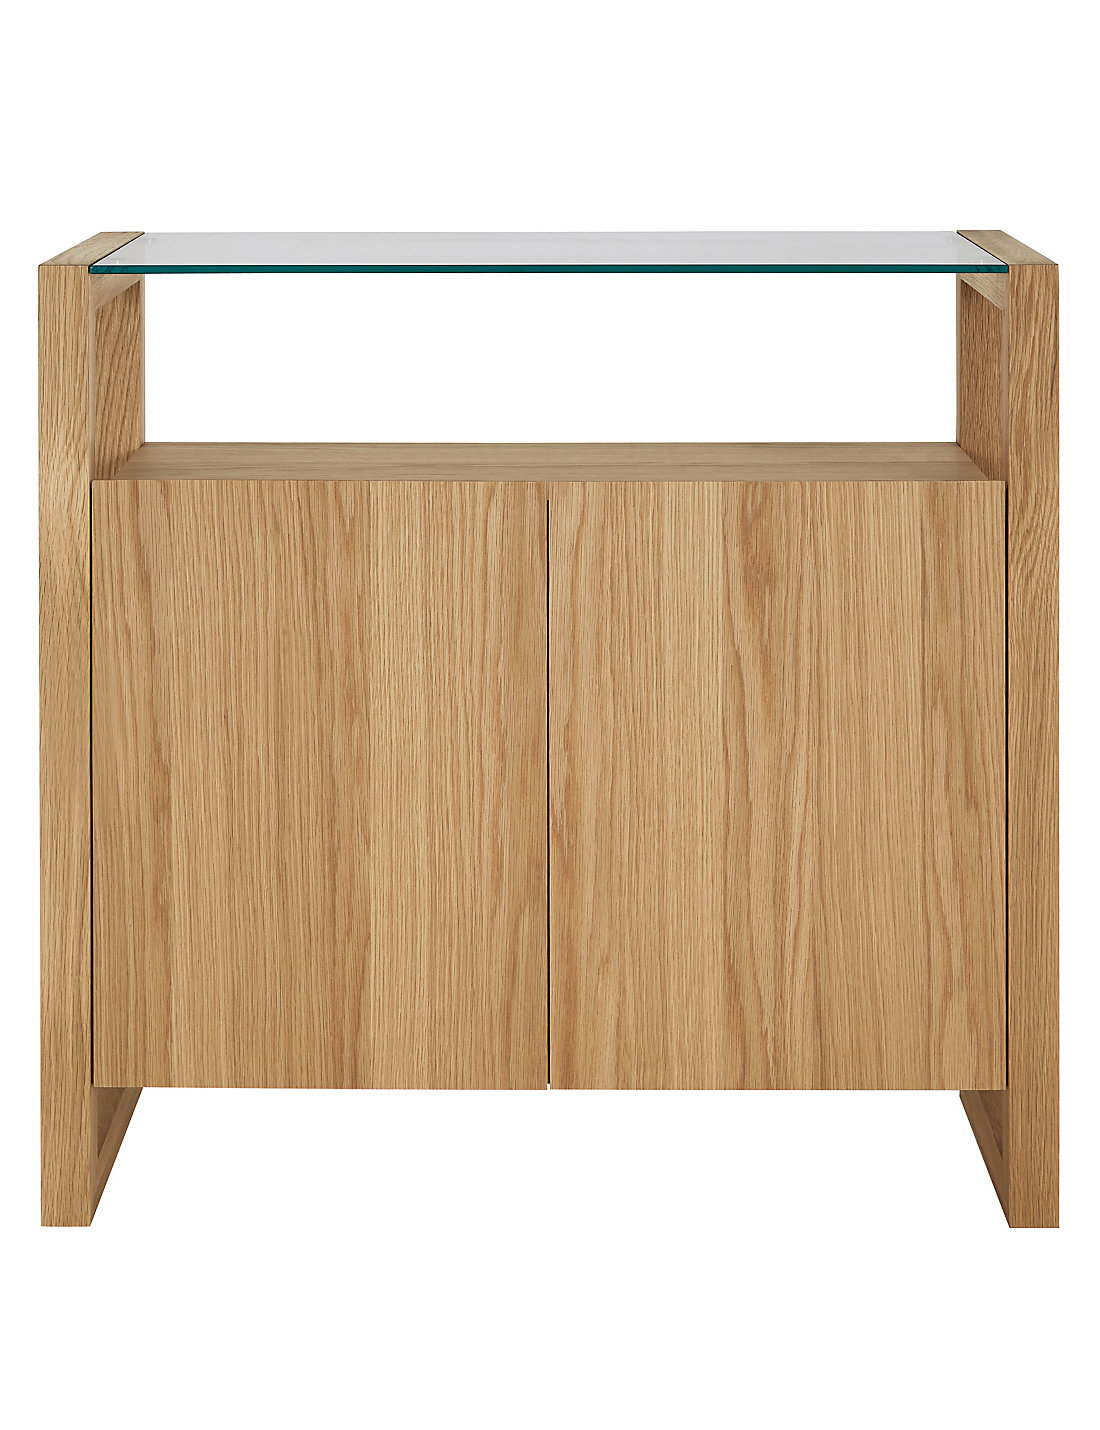 Marks And Spencer Living Room Furniture Colby Living Room Range Colby Glass Top Coffee Tables Ms